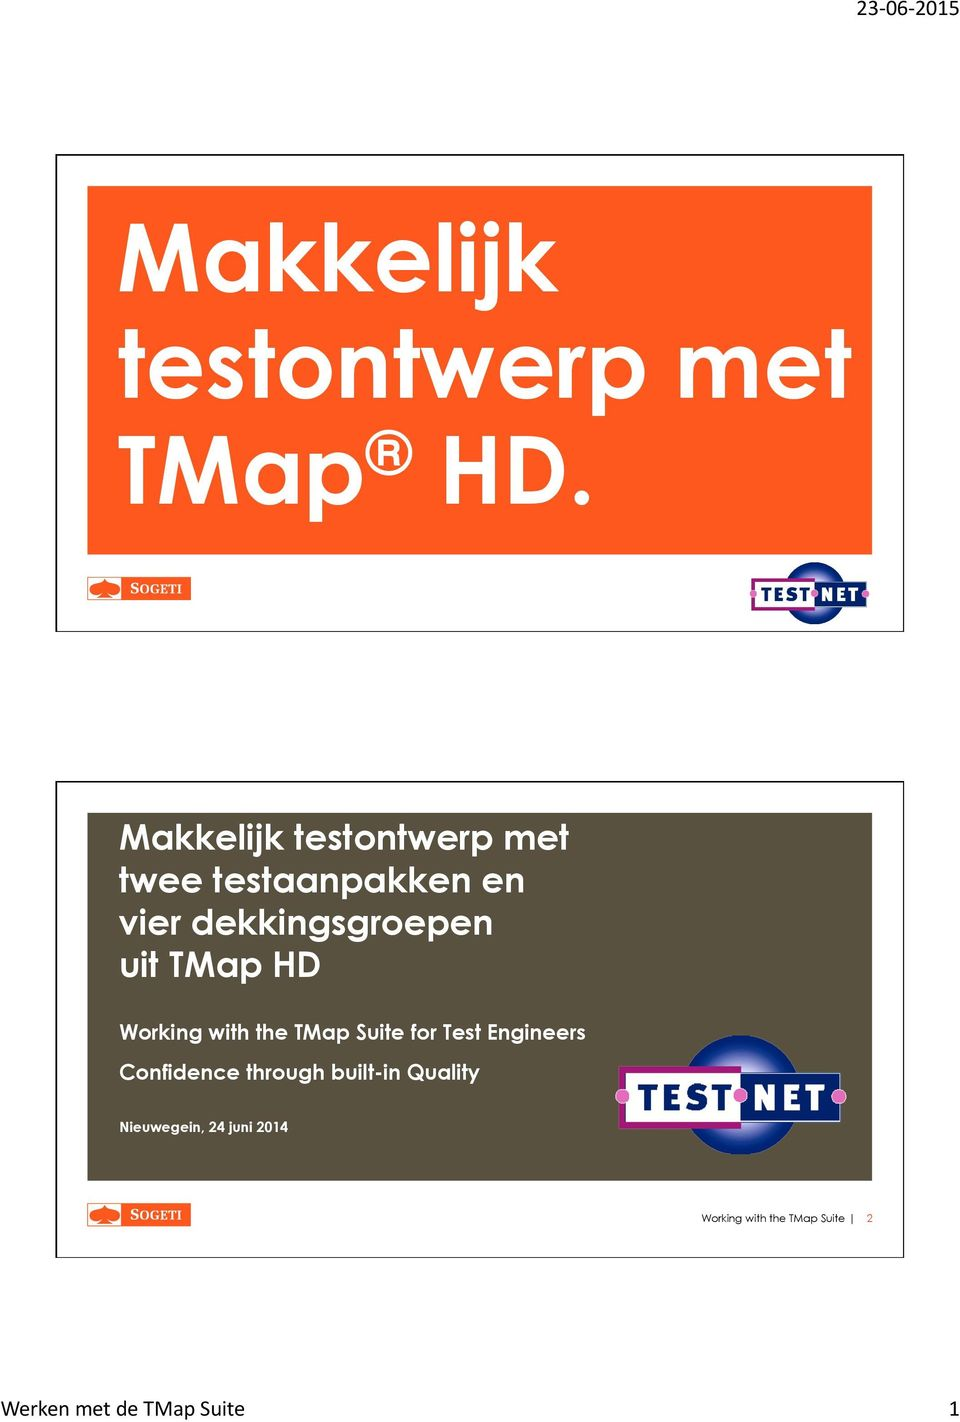 dekkingsgroepen uit TMap HD Working with the TMap Suite for